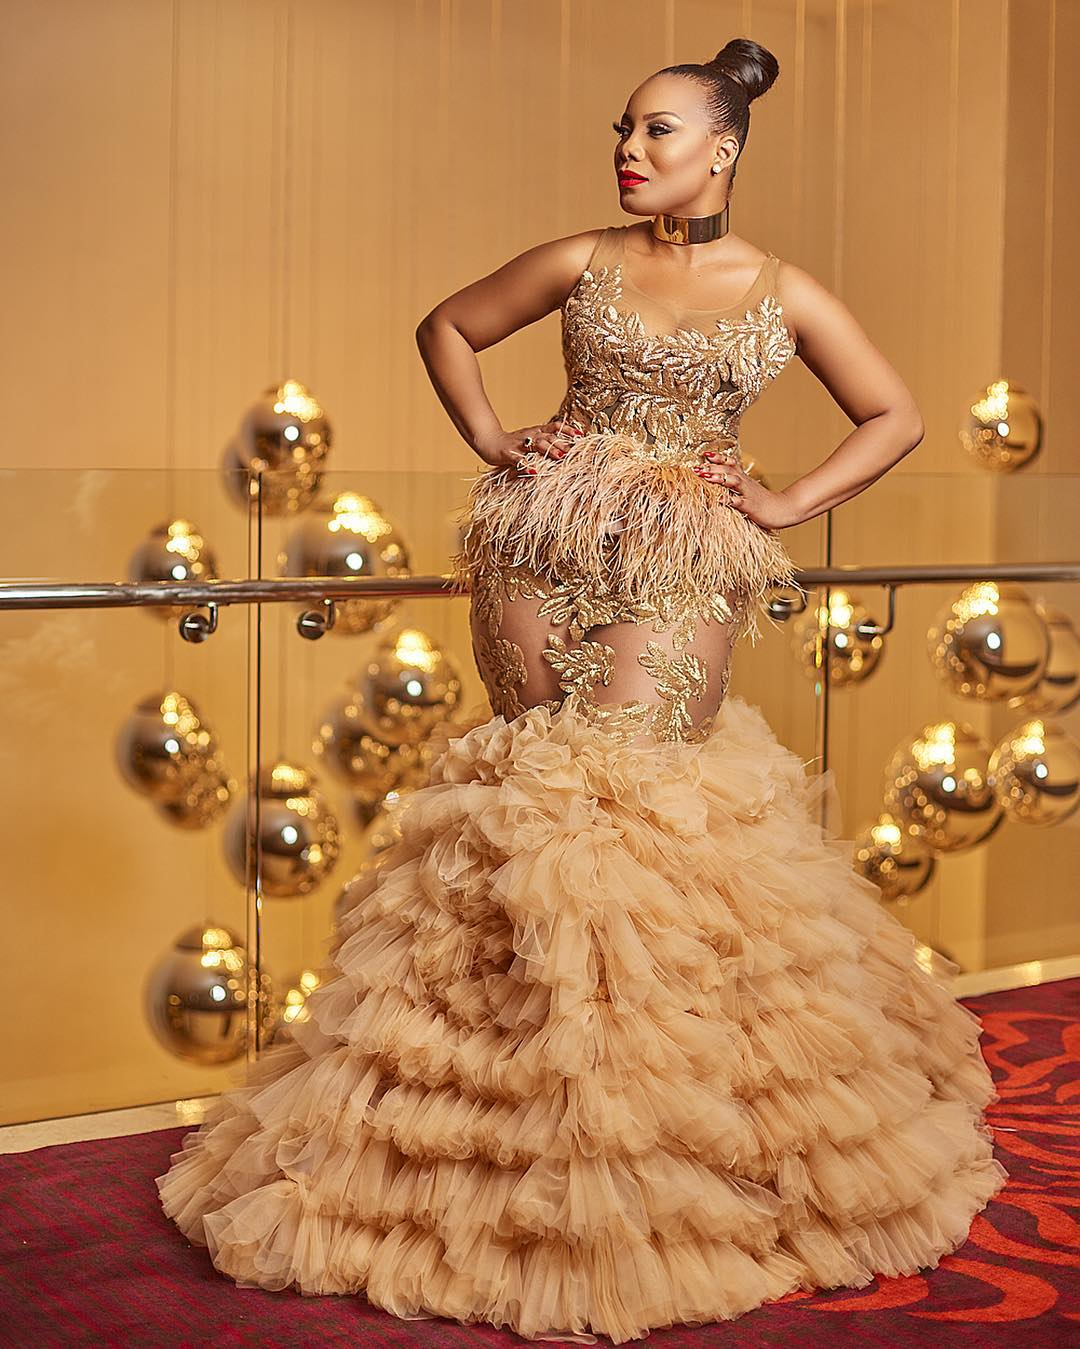 Red Carpet Crush: Ghana Actress Zynell Lydia Zuh